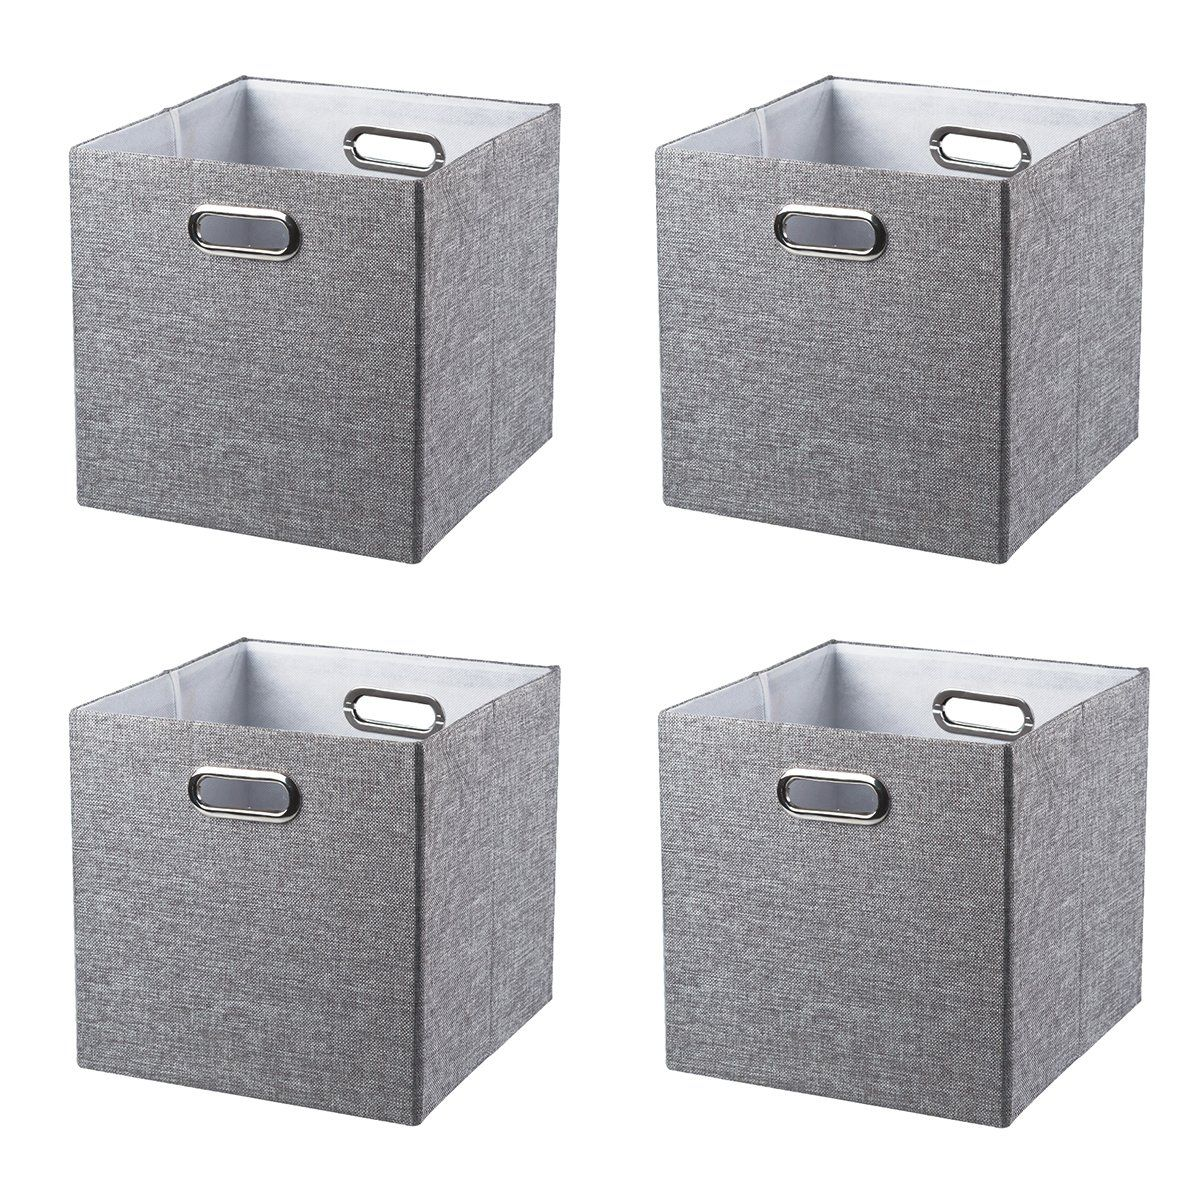 Baist Fabric Storage Cubes,fancy Big Collapsible Colored Linen Bed Drawer Storage  Baskets Bins Organizers